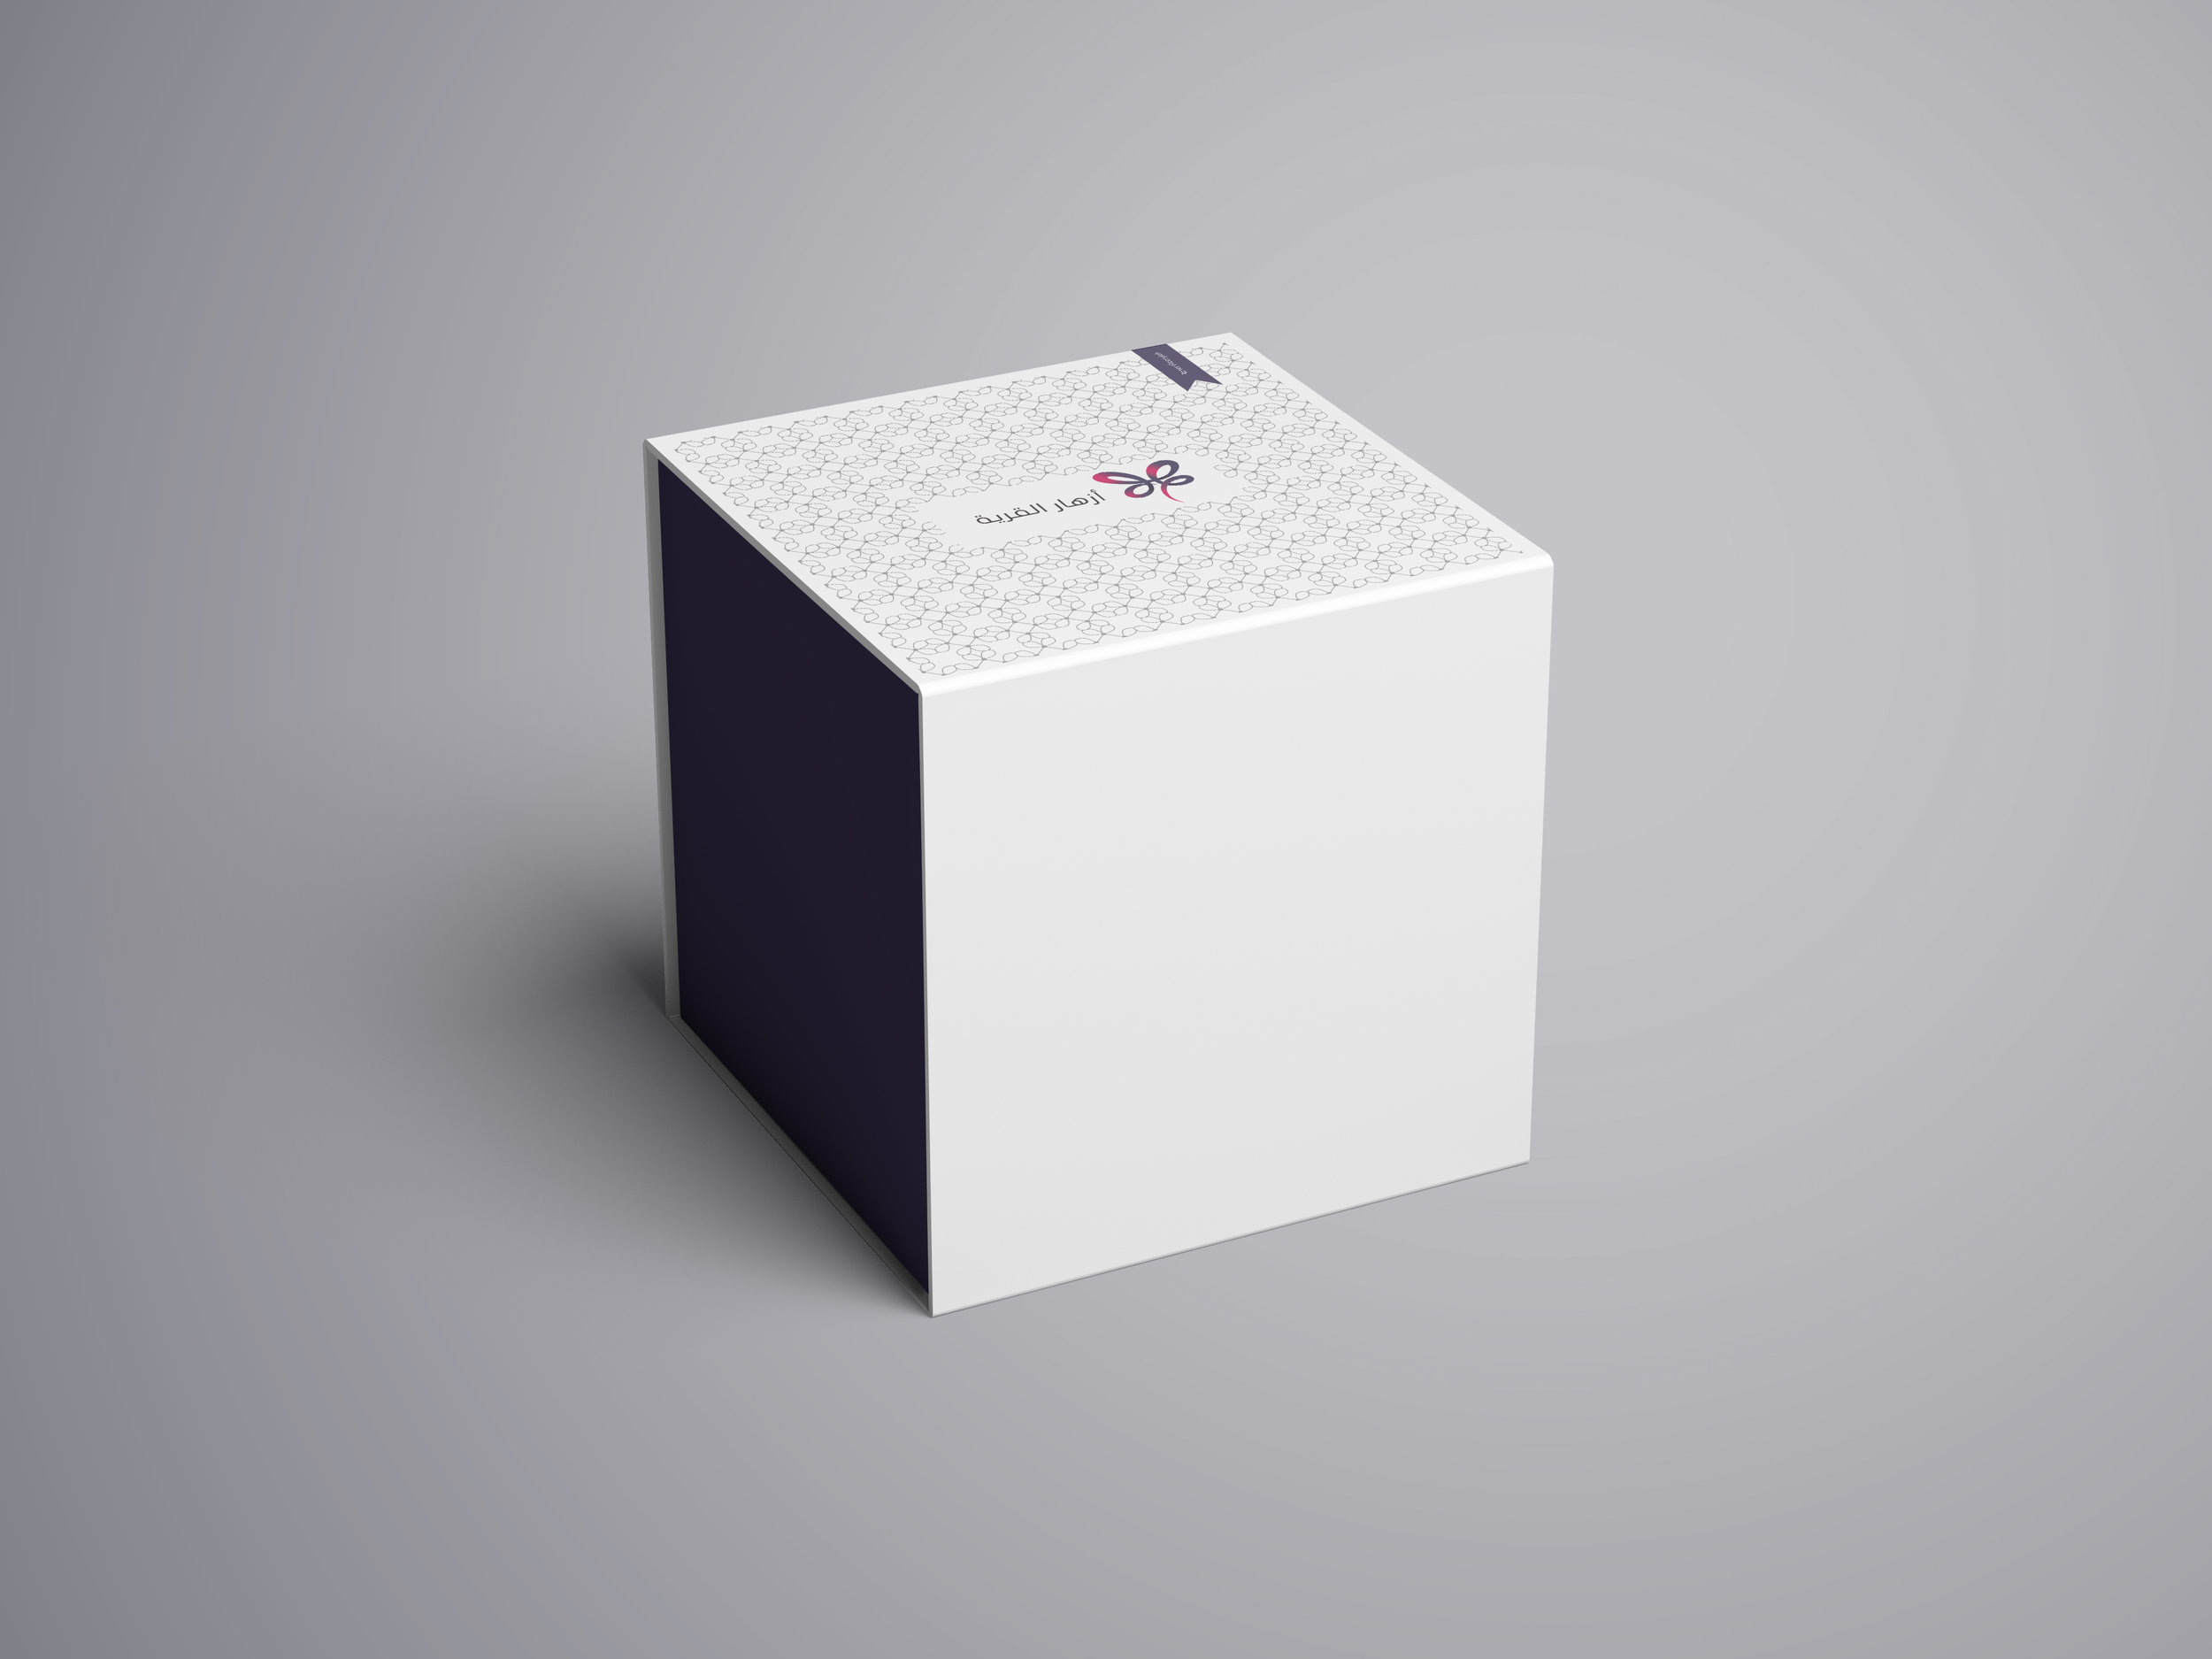 Slide Box Package Mockup 2.jpg